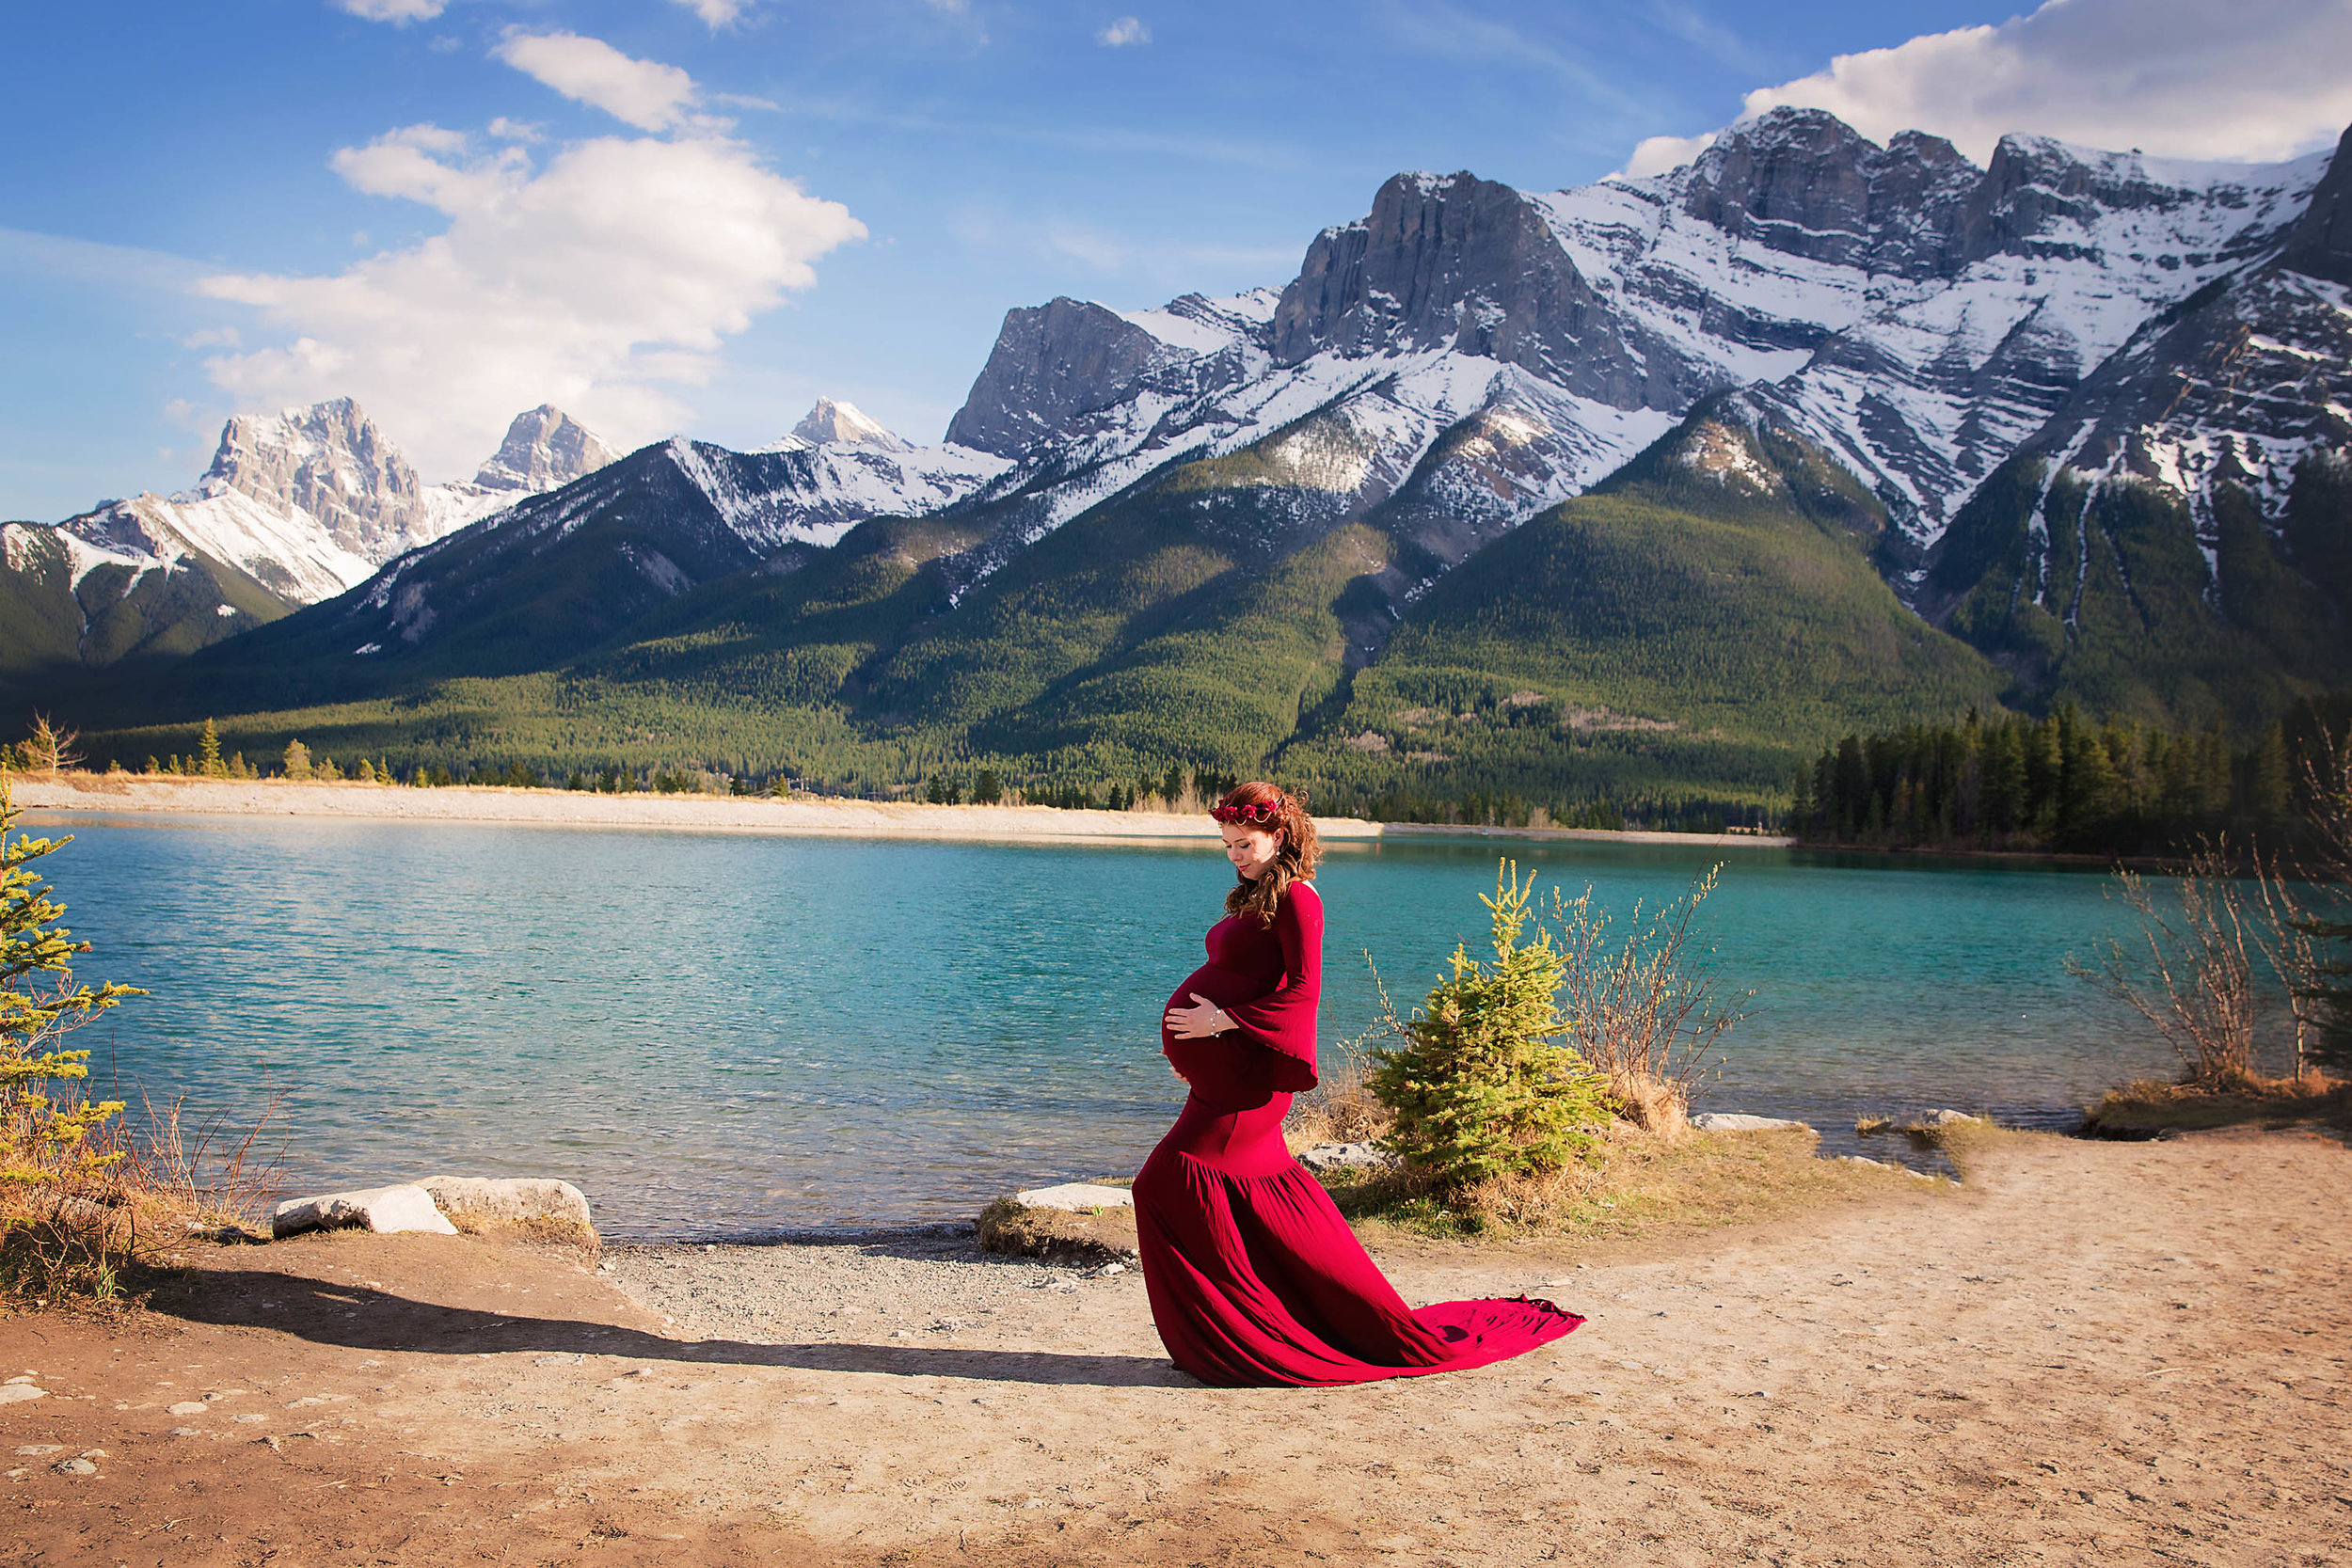 Maternity photoshoot in the mountains in Canmore, Alberta, Canada. Calgary maternity photographer.